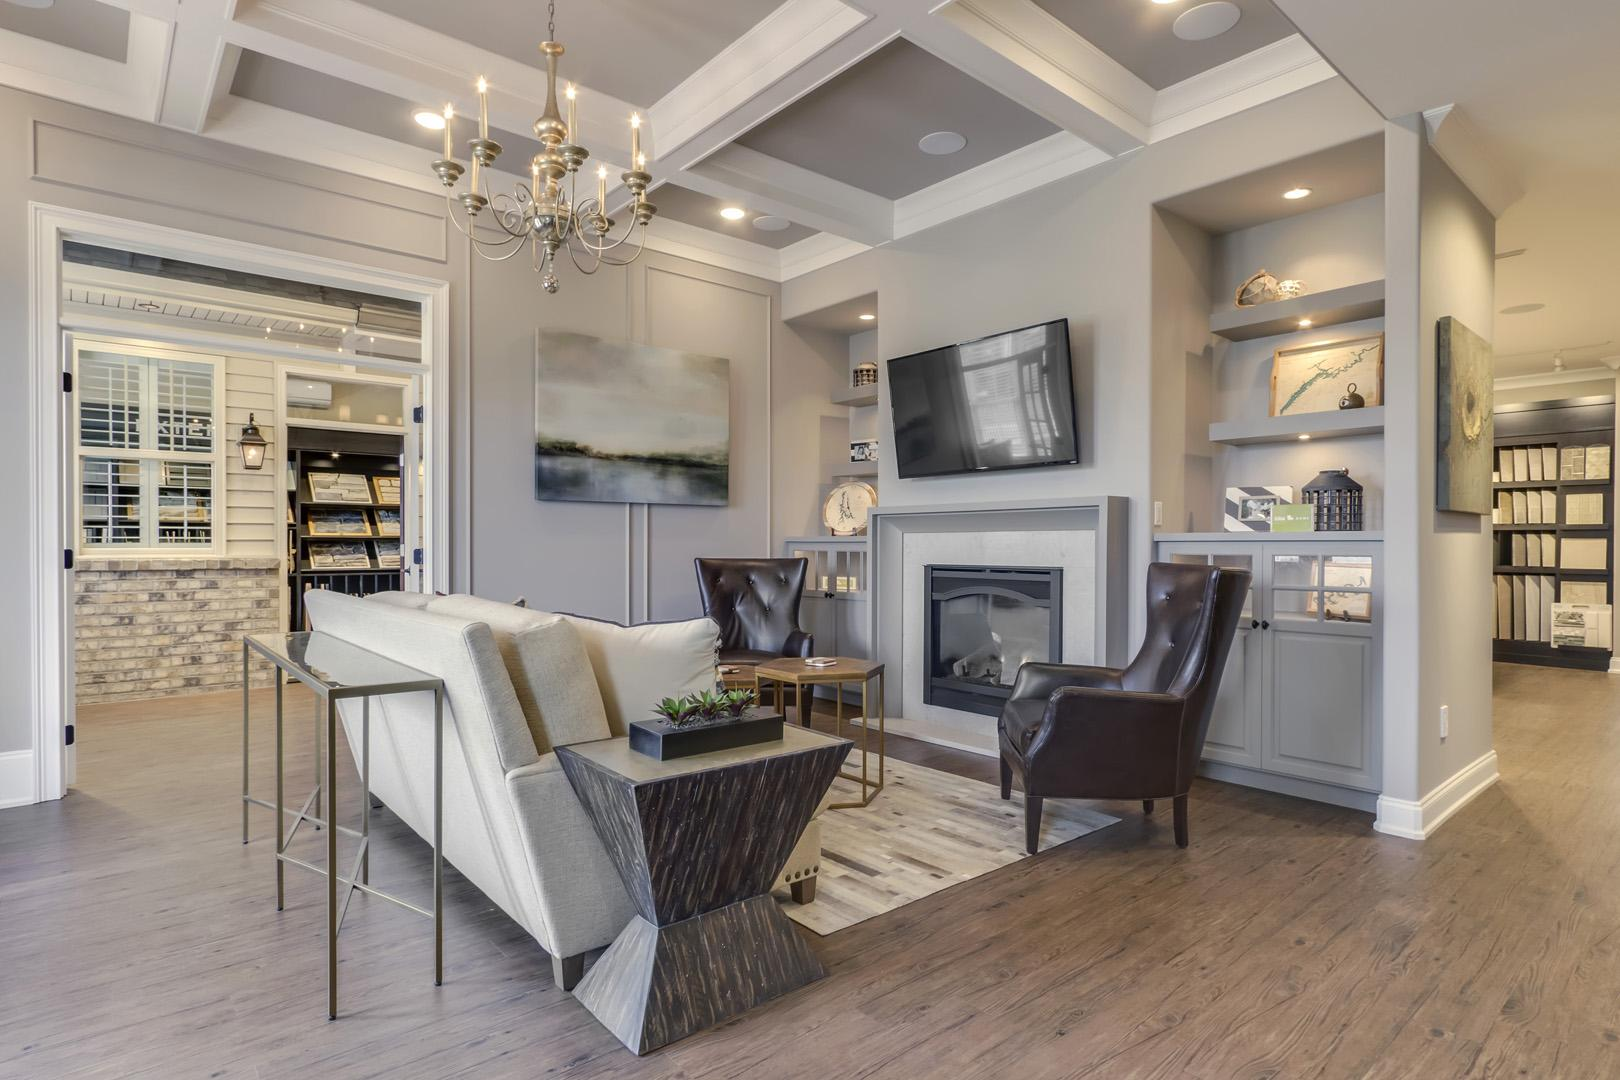 Cbh homes design studio floorplan photo gallery image close advanced home search cbh homes - Cbh homes design studio ...